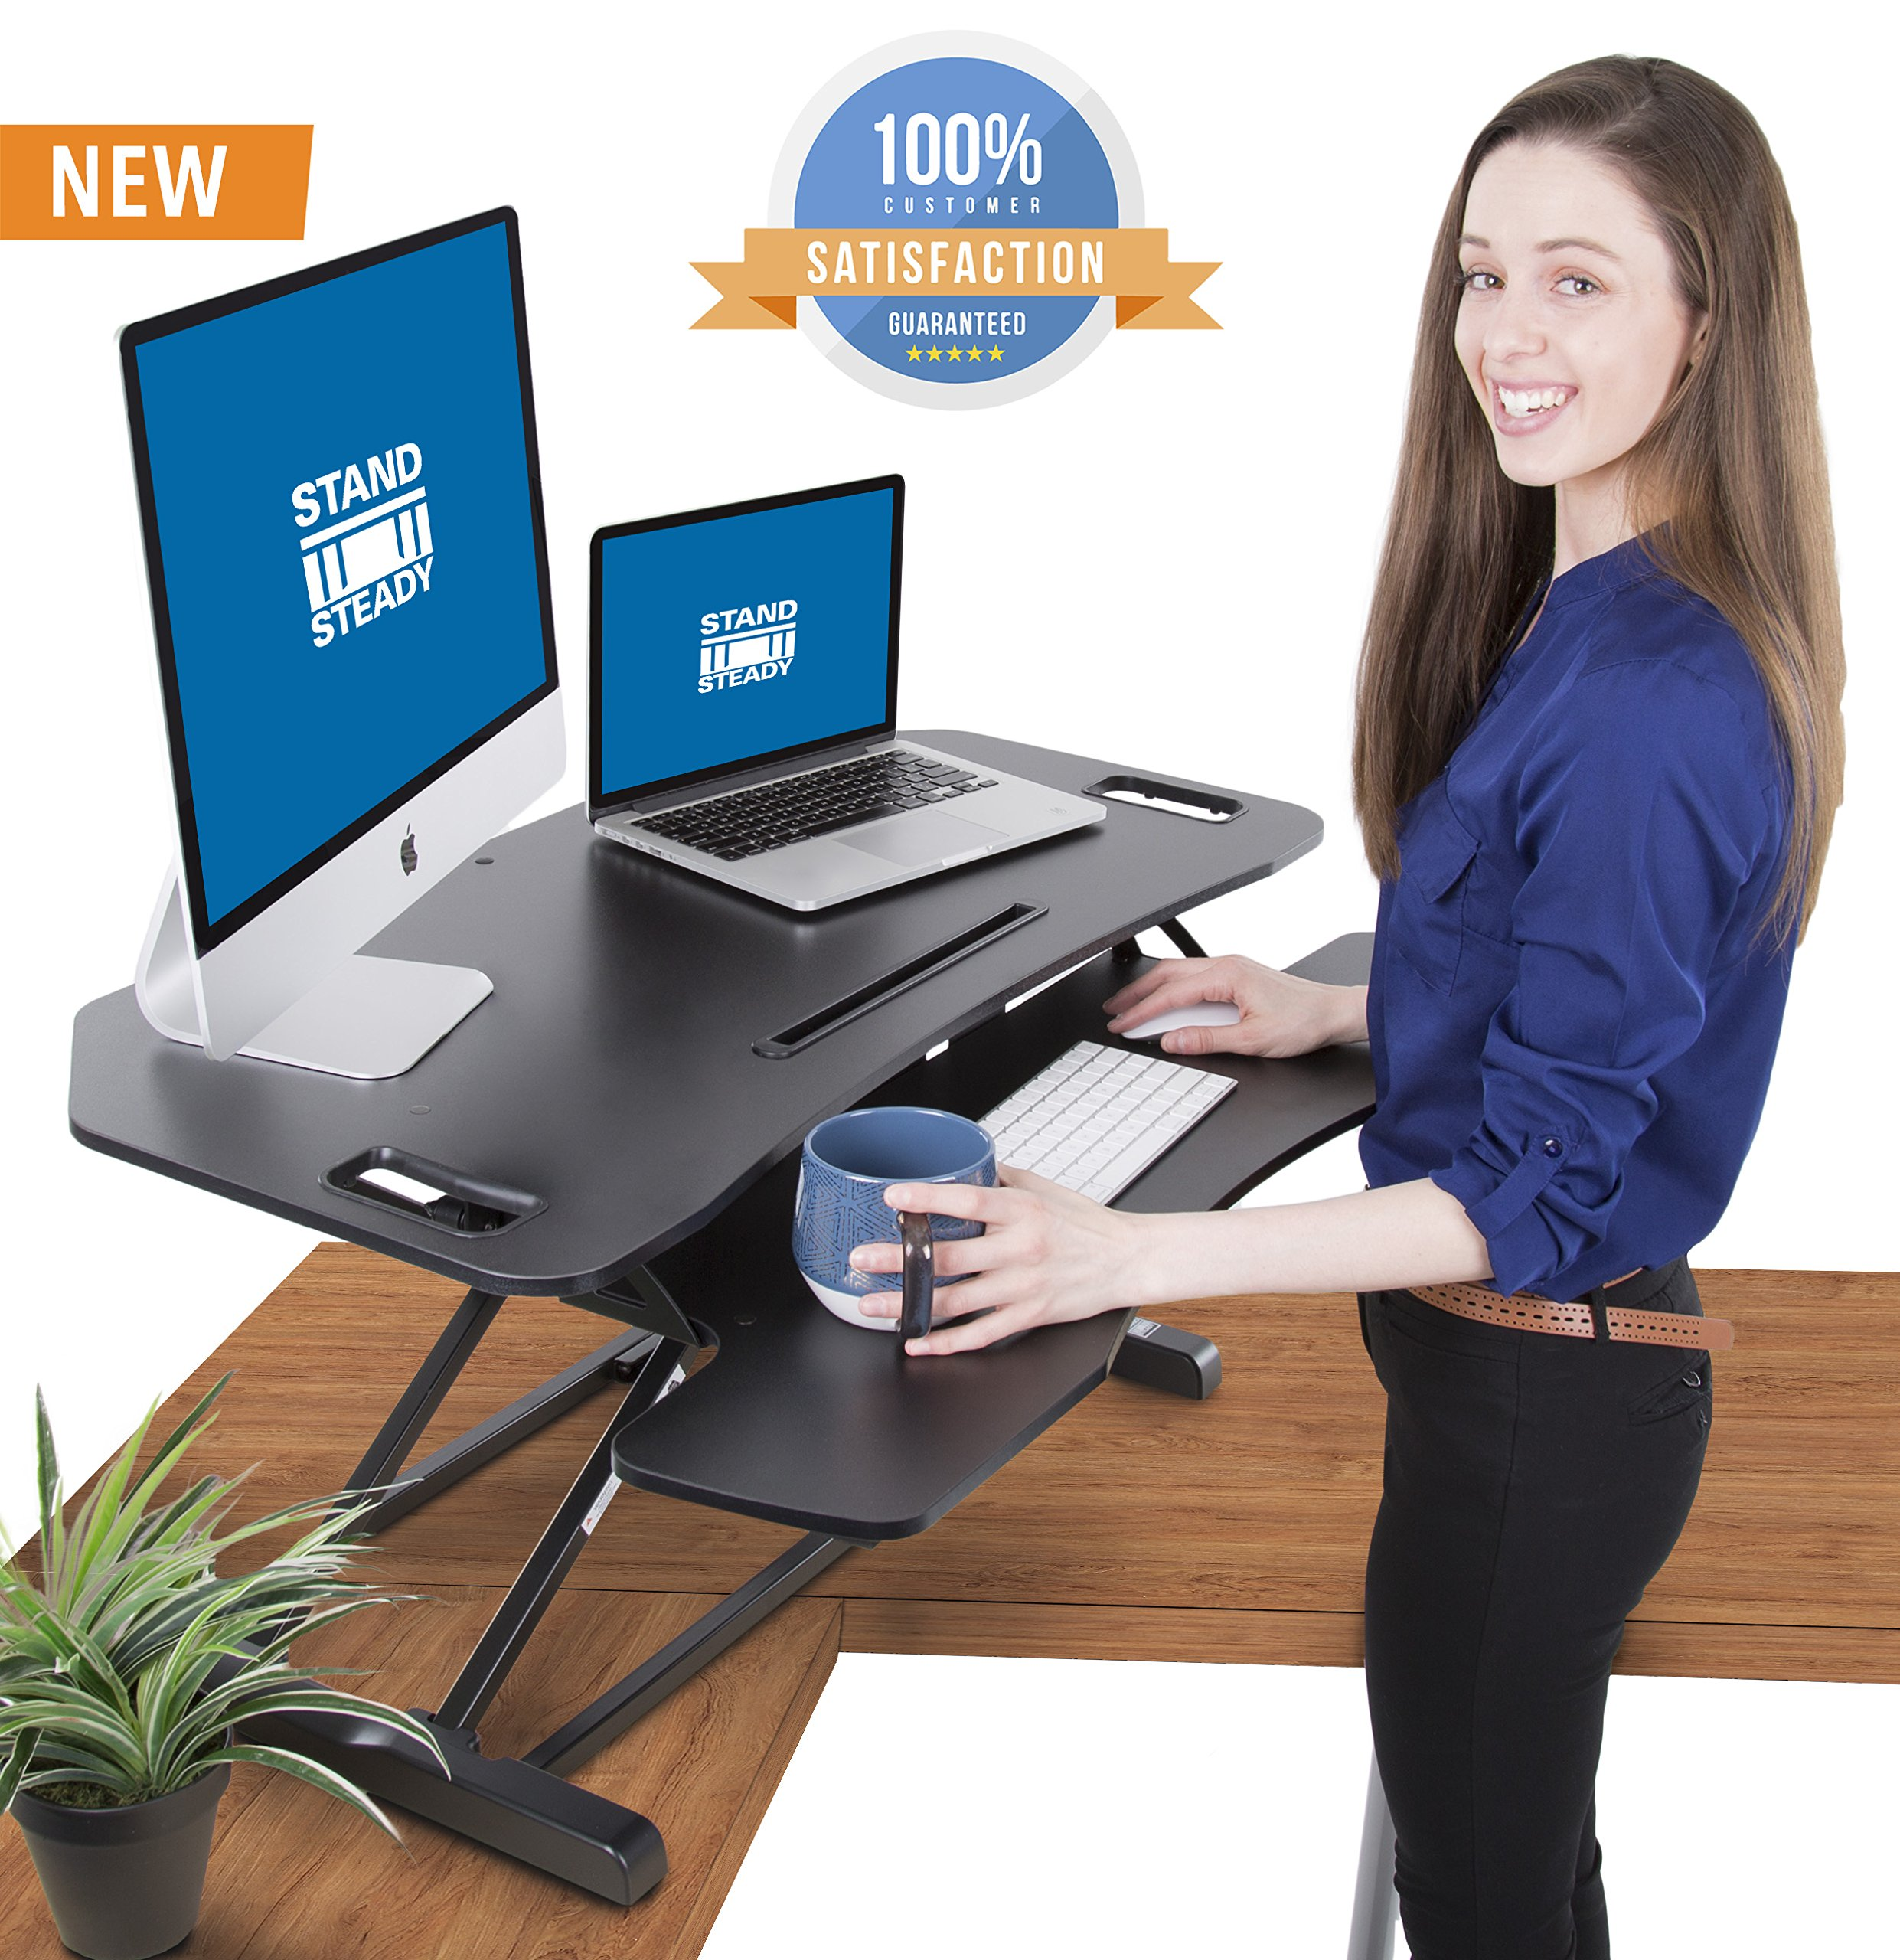 Stand Steady Flexpro Hero Corner Two Level Standing Desk Converter - Easily Sit to Stand in Seconds! Large Work Space with Extra Bonus Level for Keyboard and Mouse! (Corner (37 Inch)) by Stand Steady